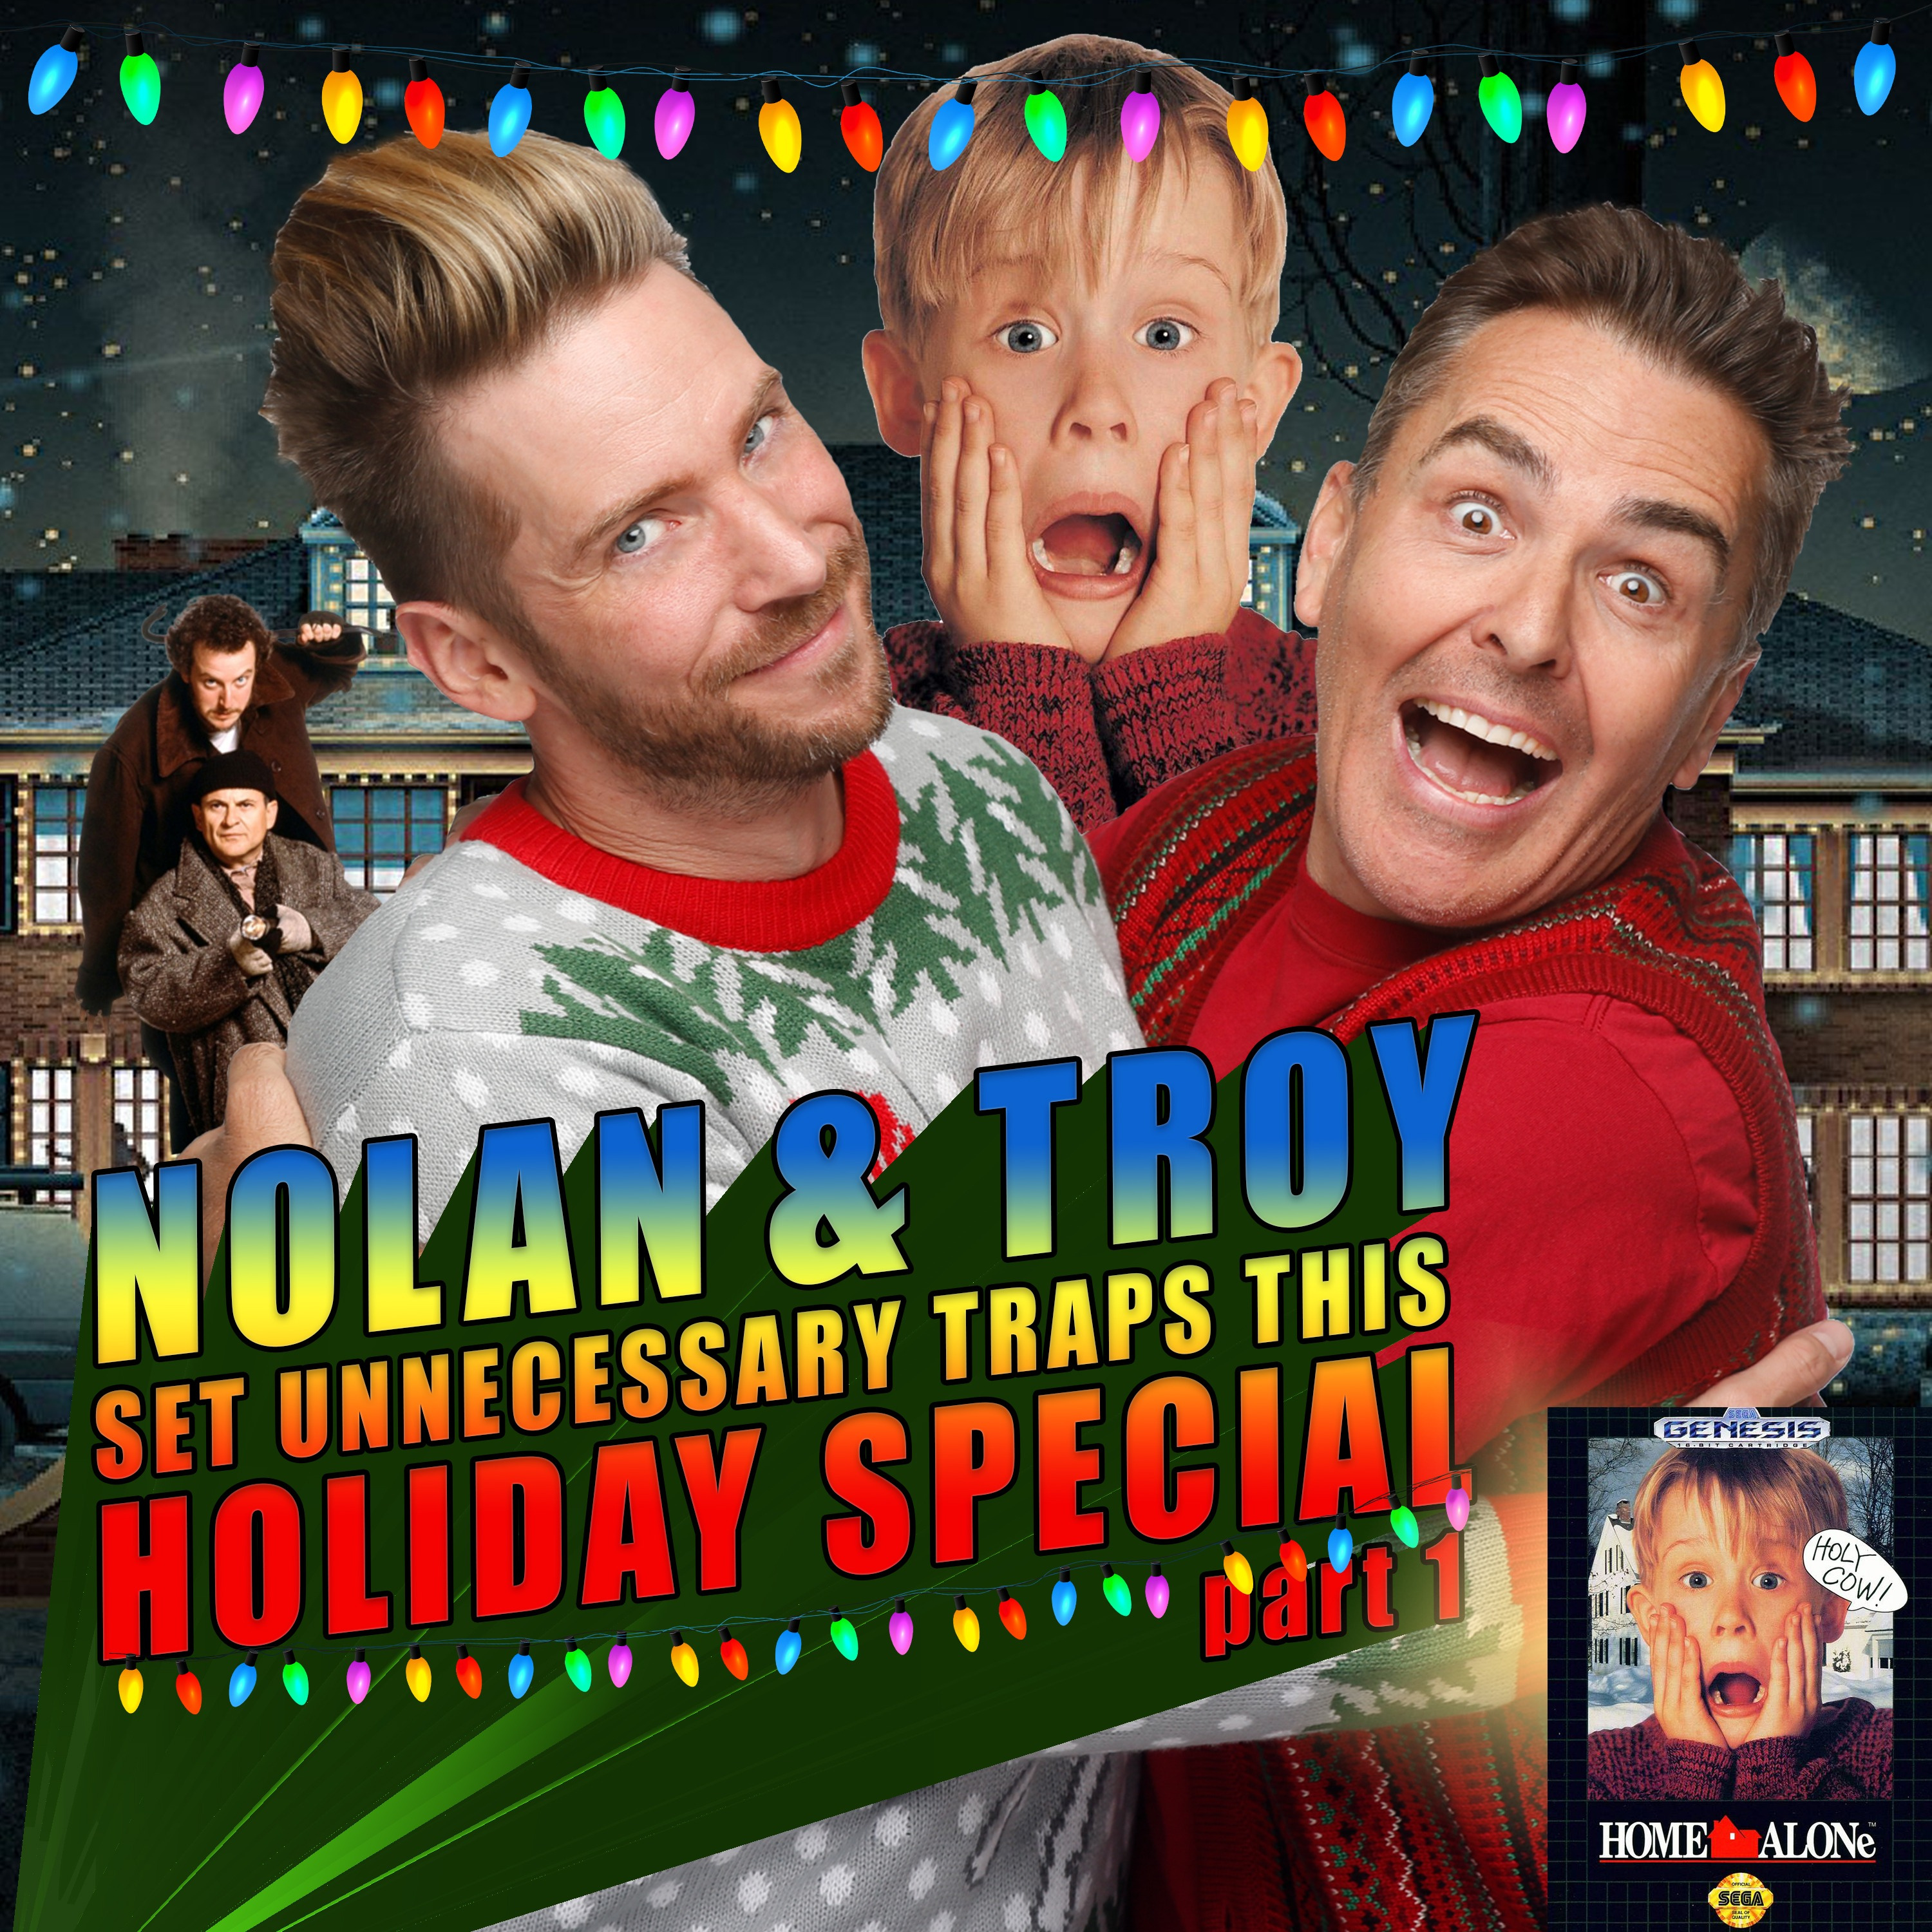 Nolan North and Troy Baker set Unnecessary Traps this Holiday Special Part 1